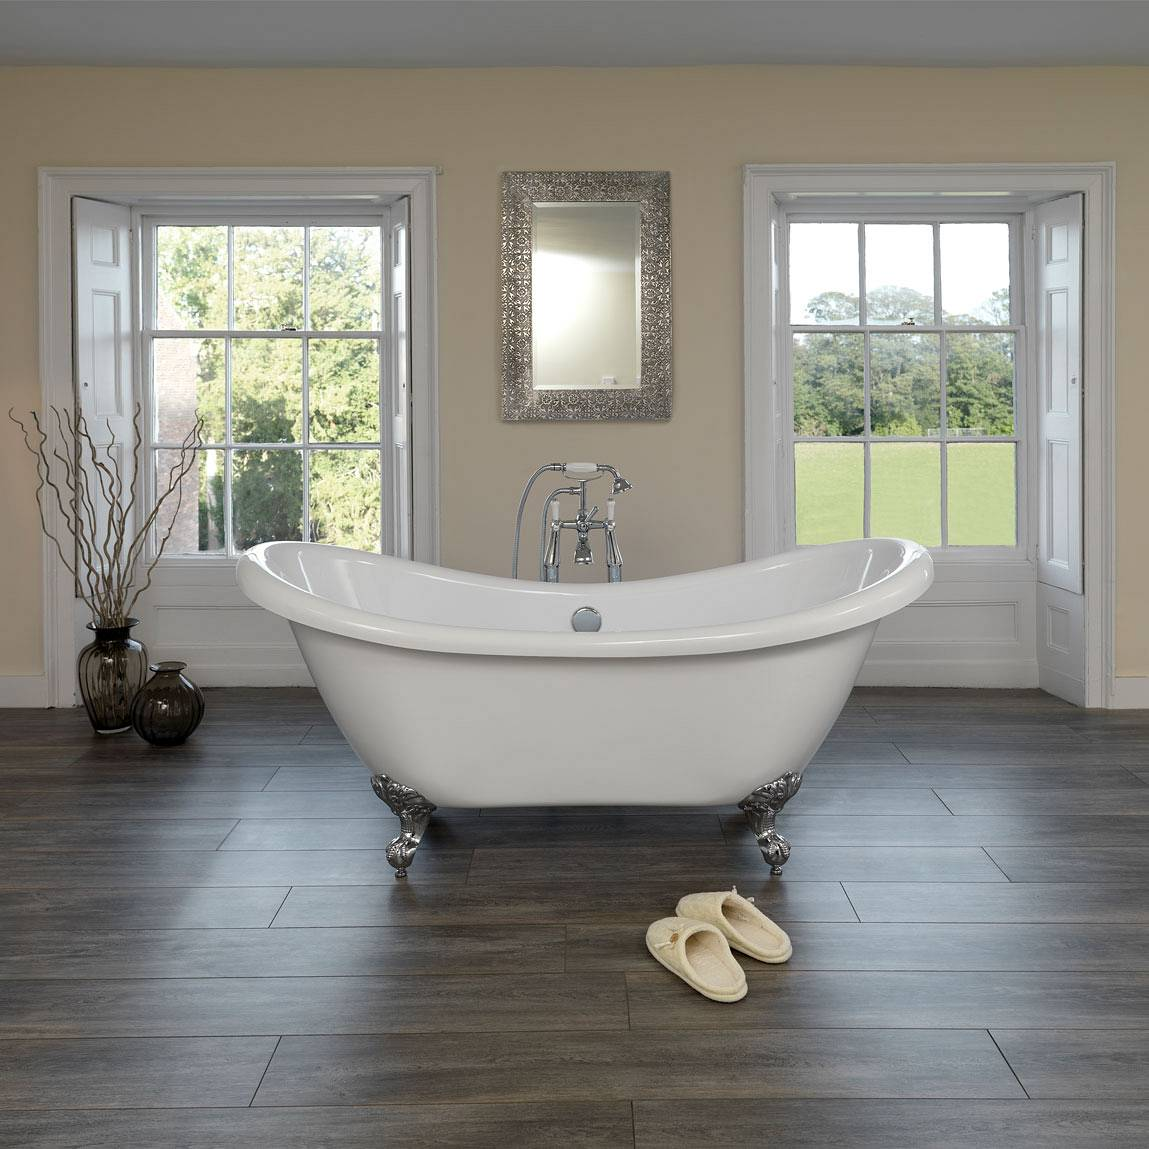 Top two roll top baths for a transitional bathroom design for Top bathroom design ideas